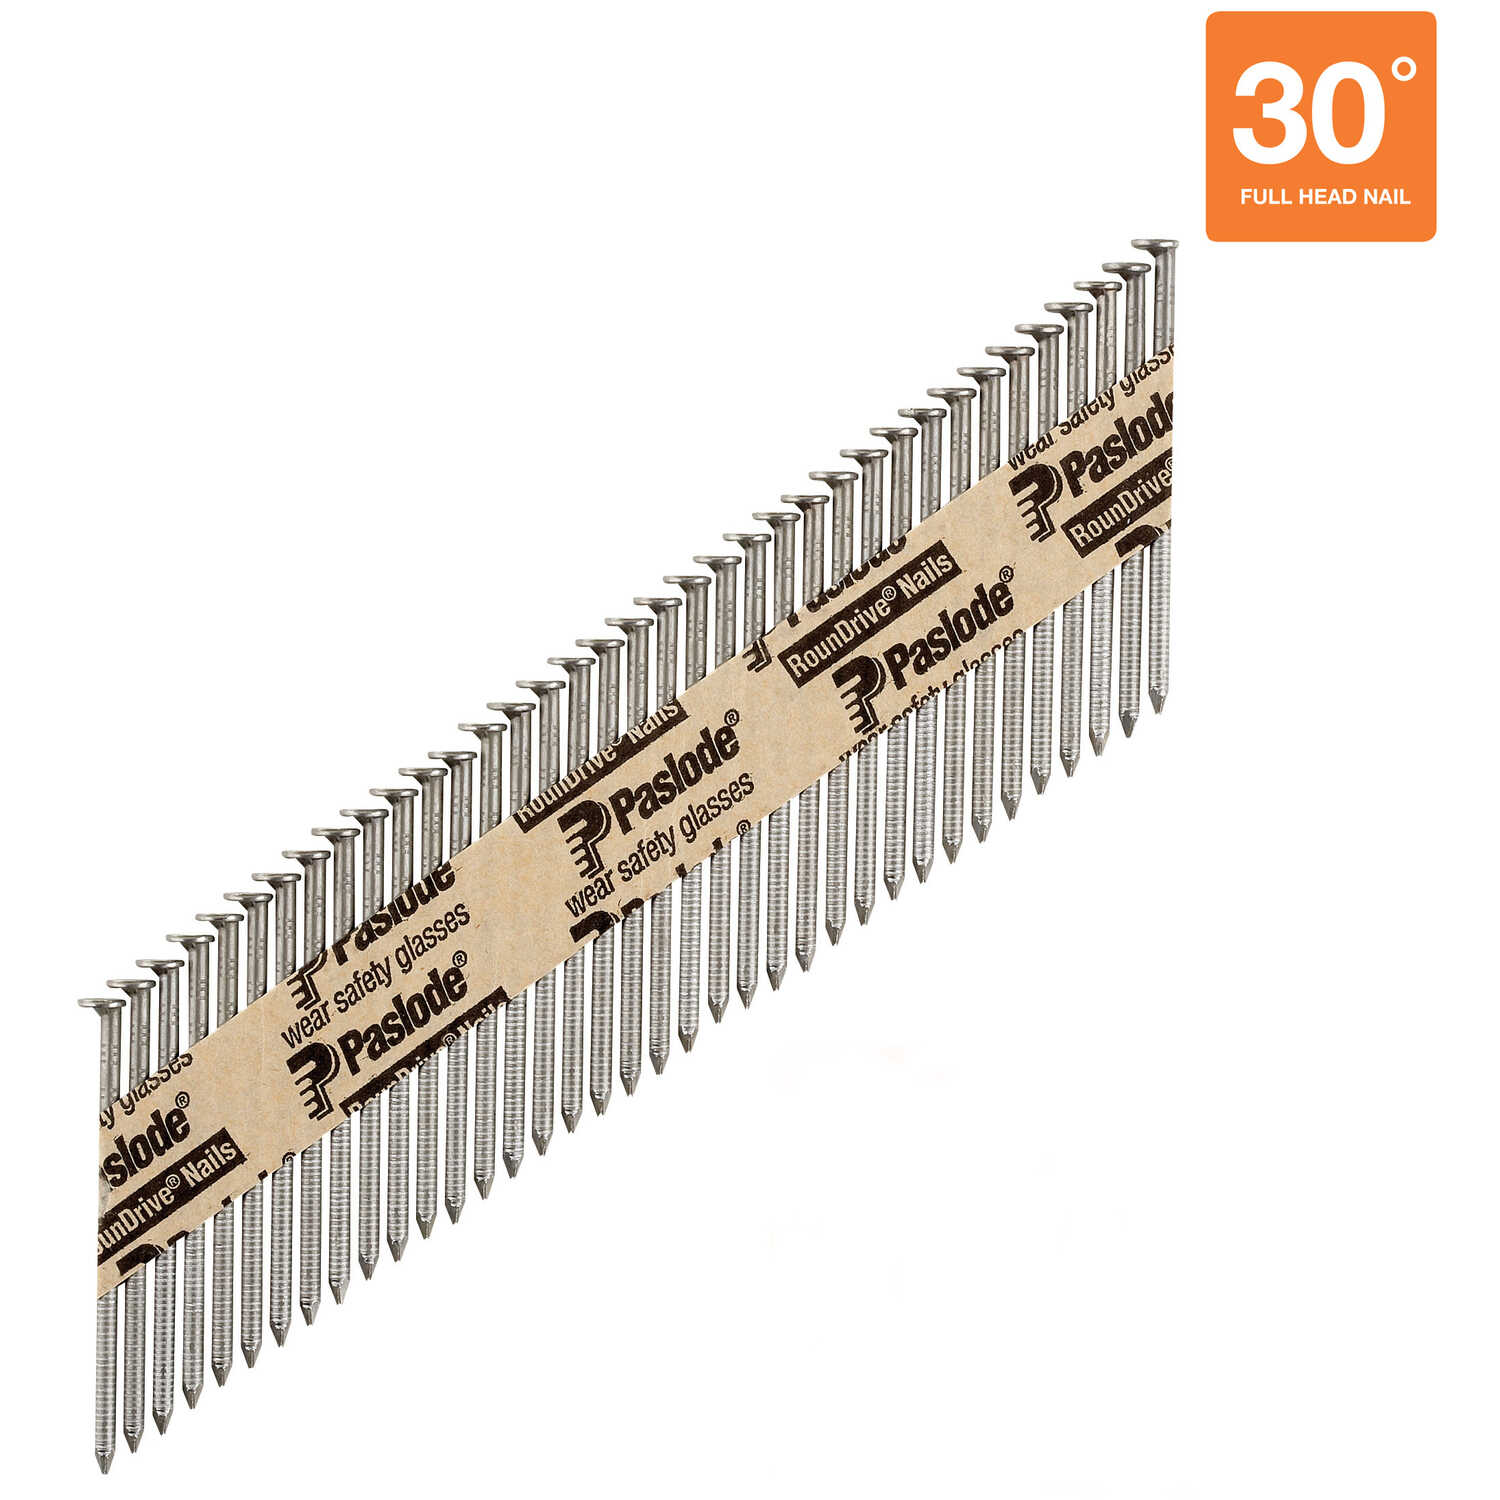 Paslode  RounDrive  30 deg. 16 Ga. Ring Shank  Straight Strip  Framing Nails  2-3/8 in. L x 0.11 in.